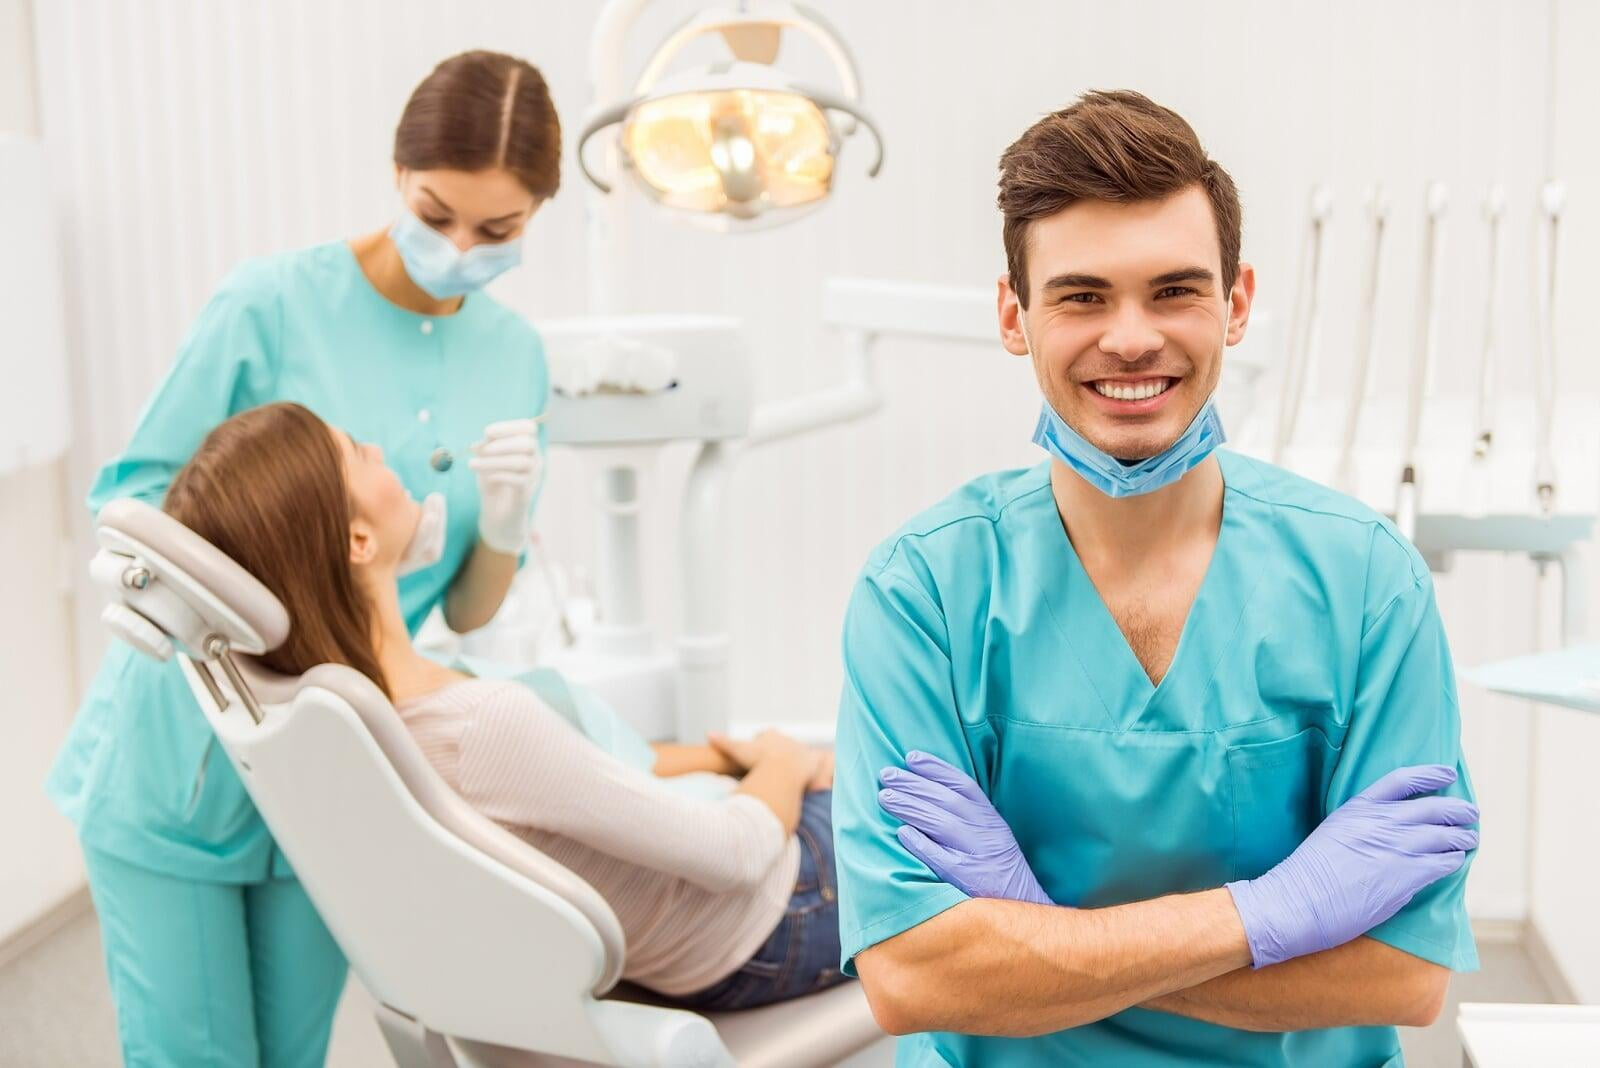 What is Dental Assisting?